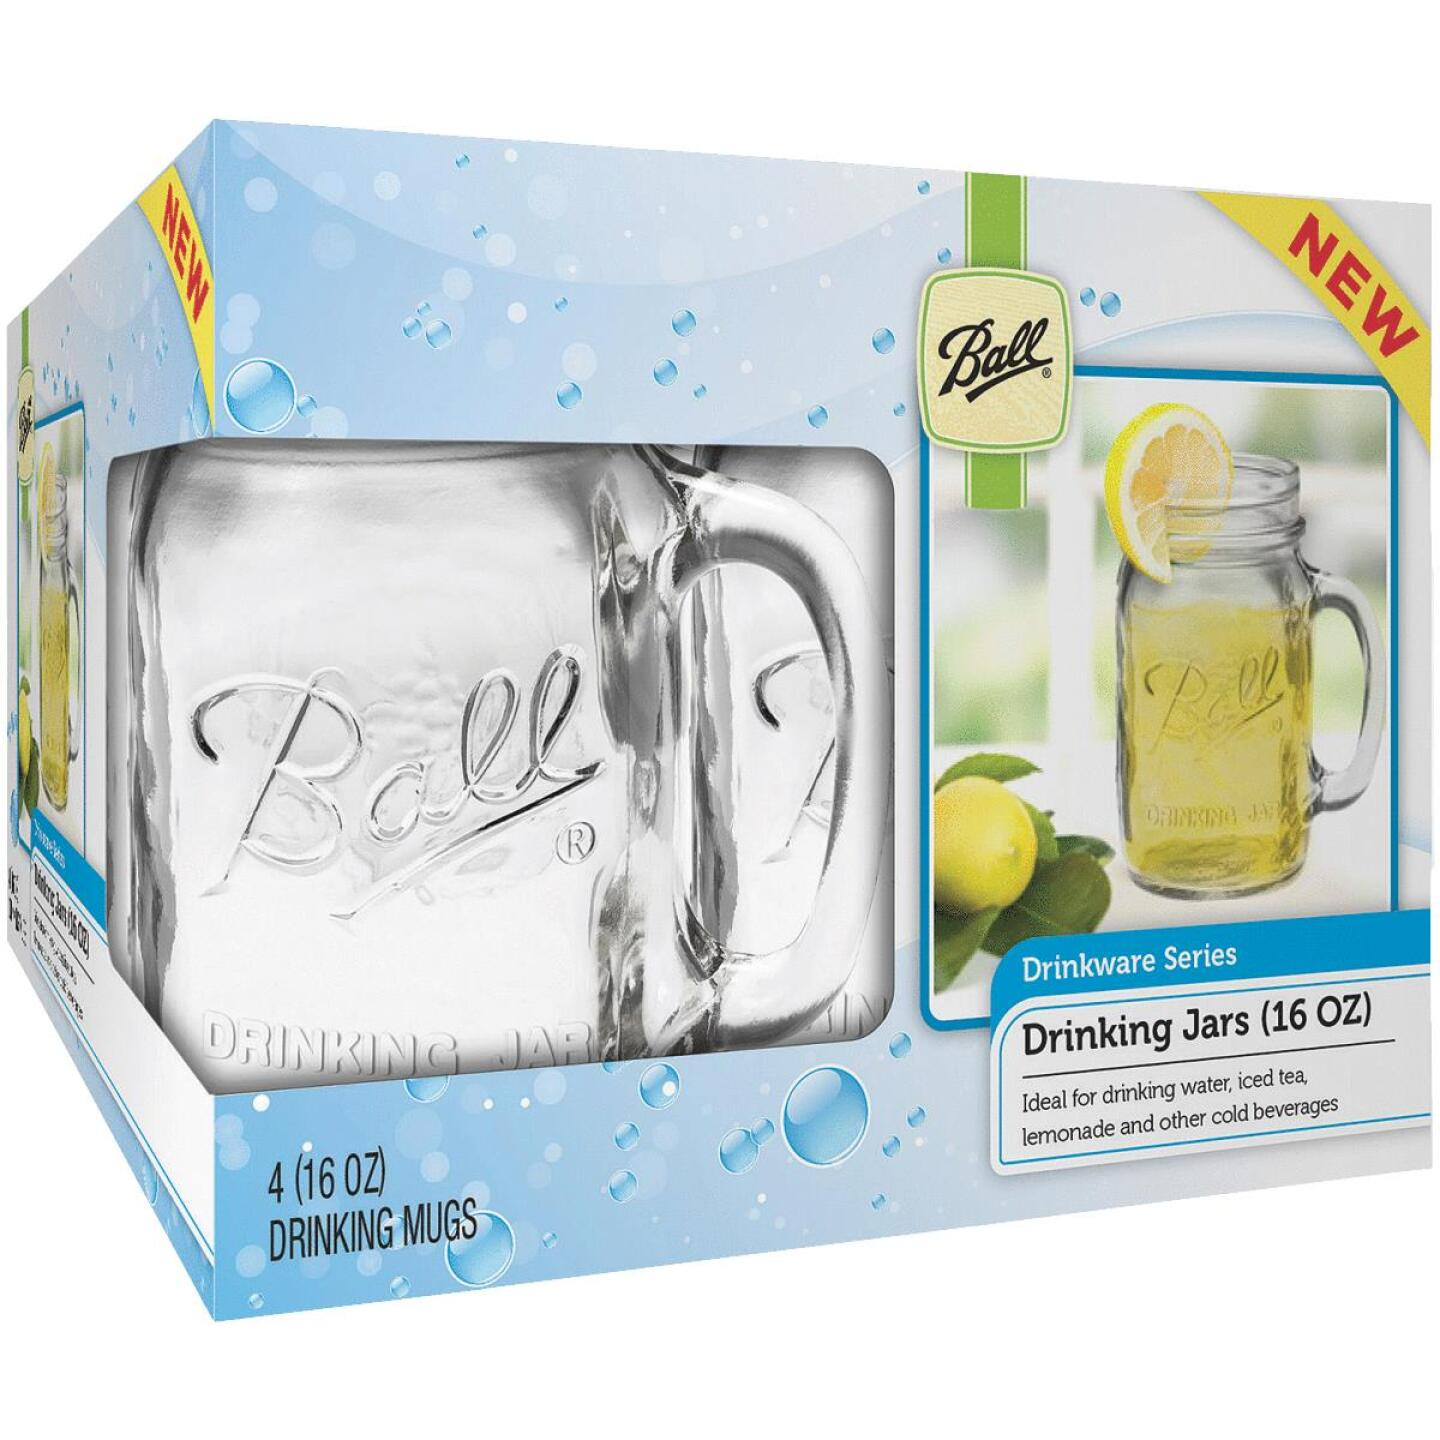 Ball 16 Oz. Drinking Mug Canning Jar (4 Pack) Image 1